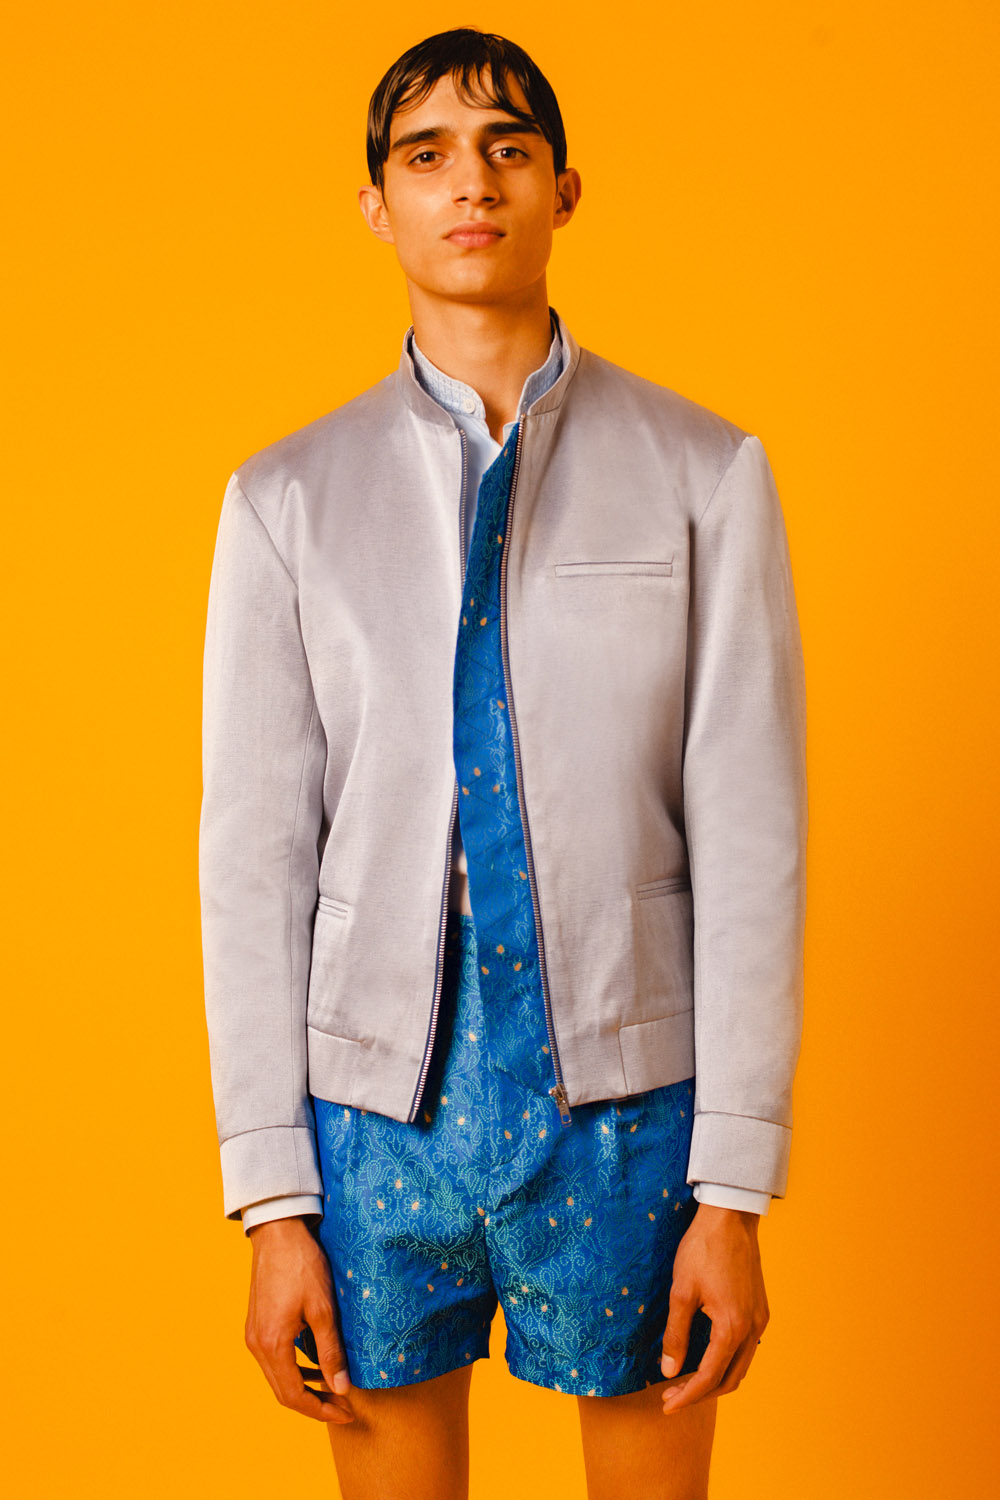 fatimayarie-advanilondon-silver-jacket-blueshorts-menswear-img_1779